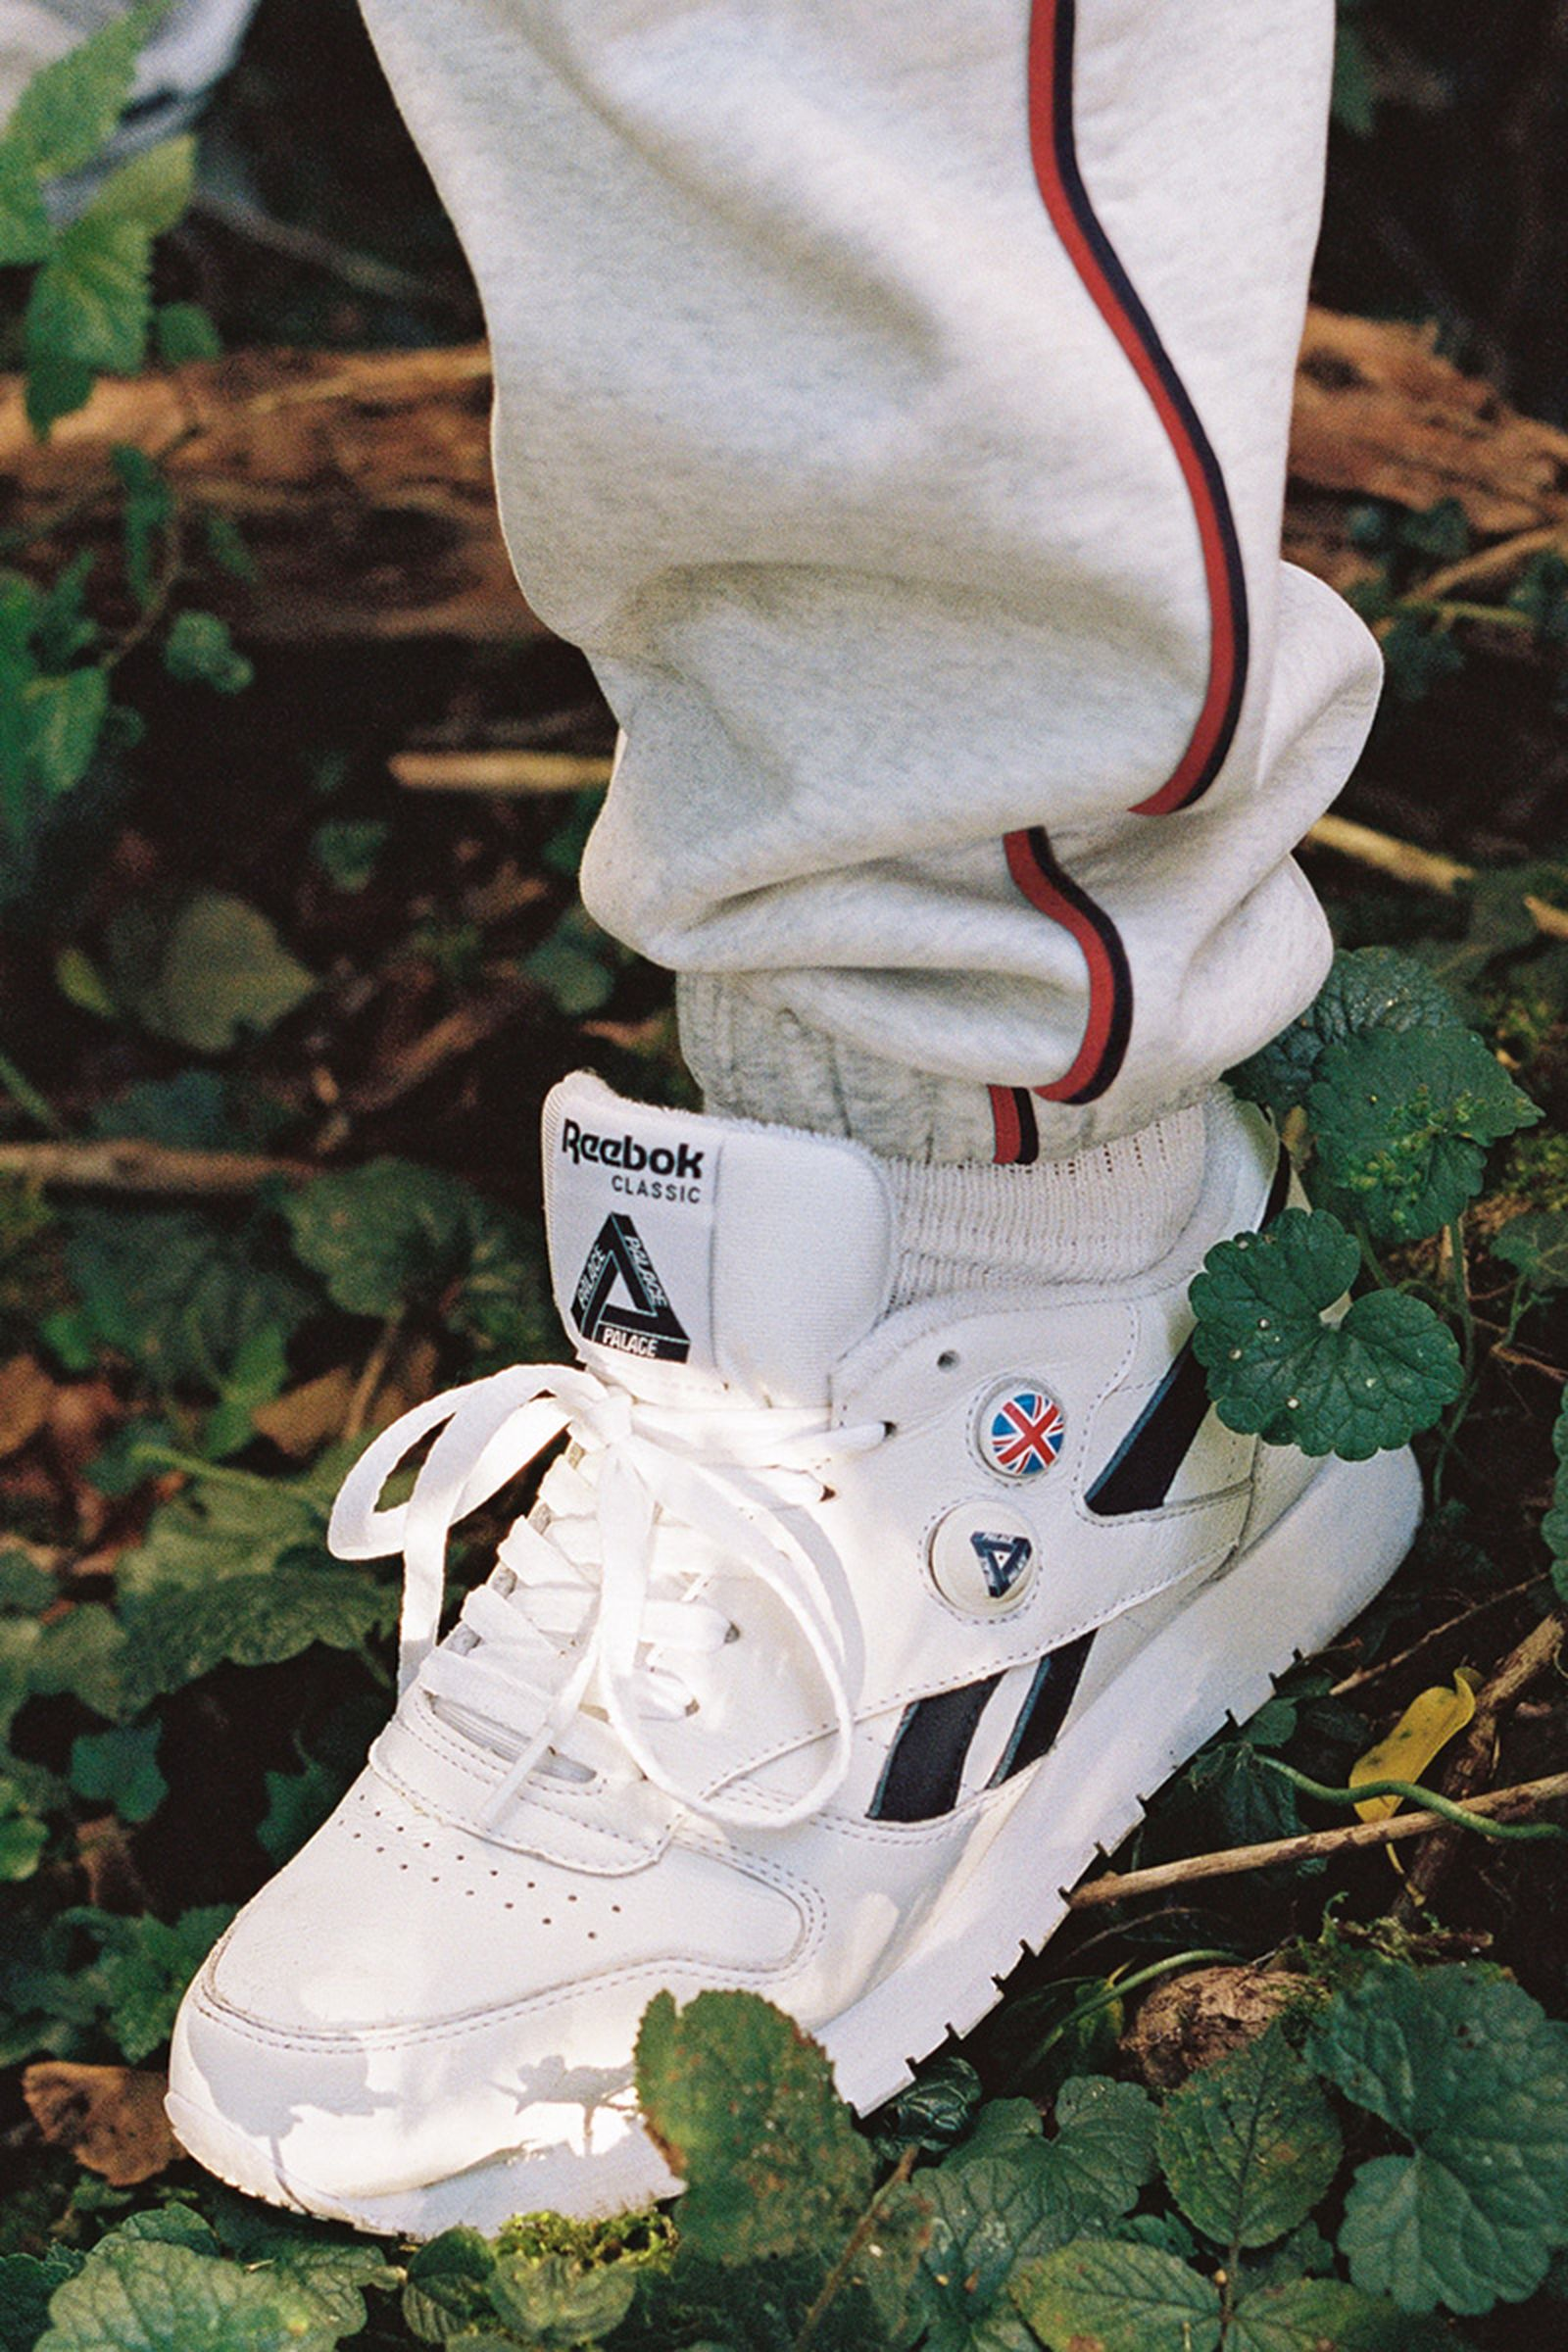 palace-reebok-classic-leather-pump-release-date-price-09